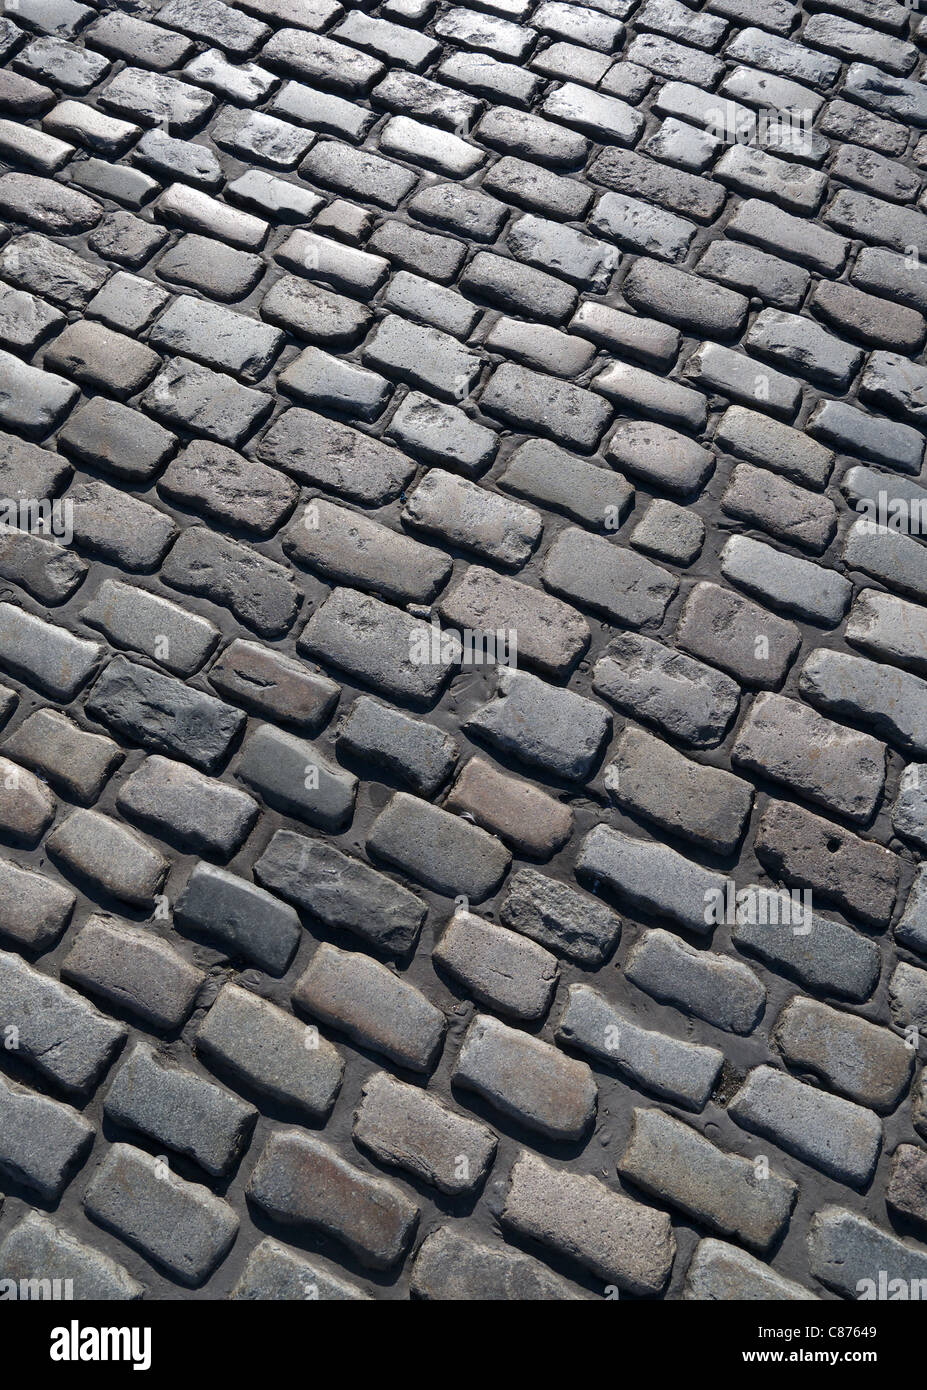 Close up of an old cobblestone street in Plymouth, Devon UK. - Stock Image